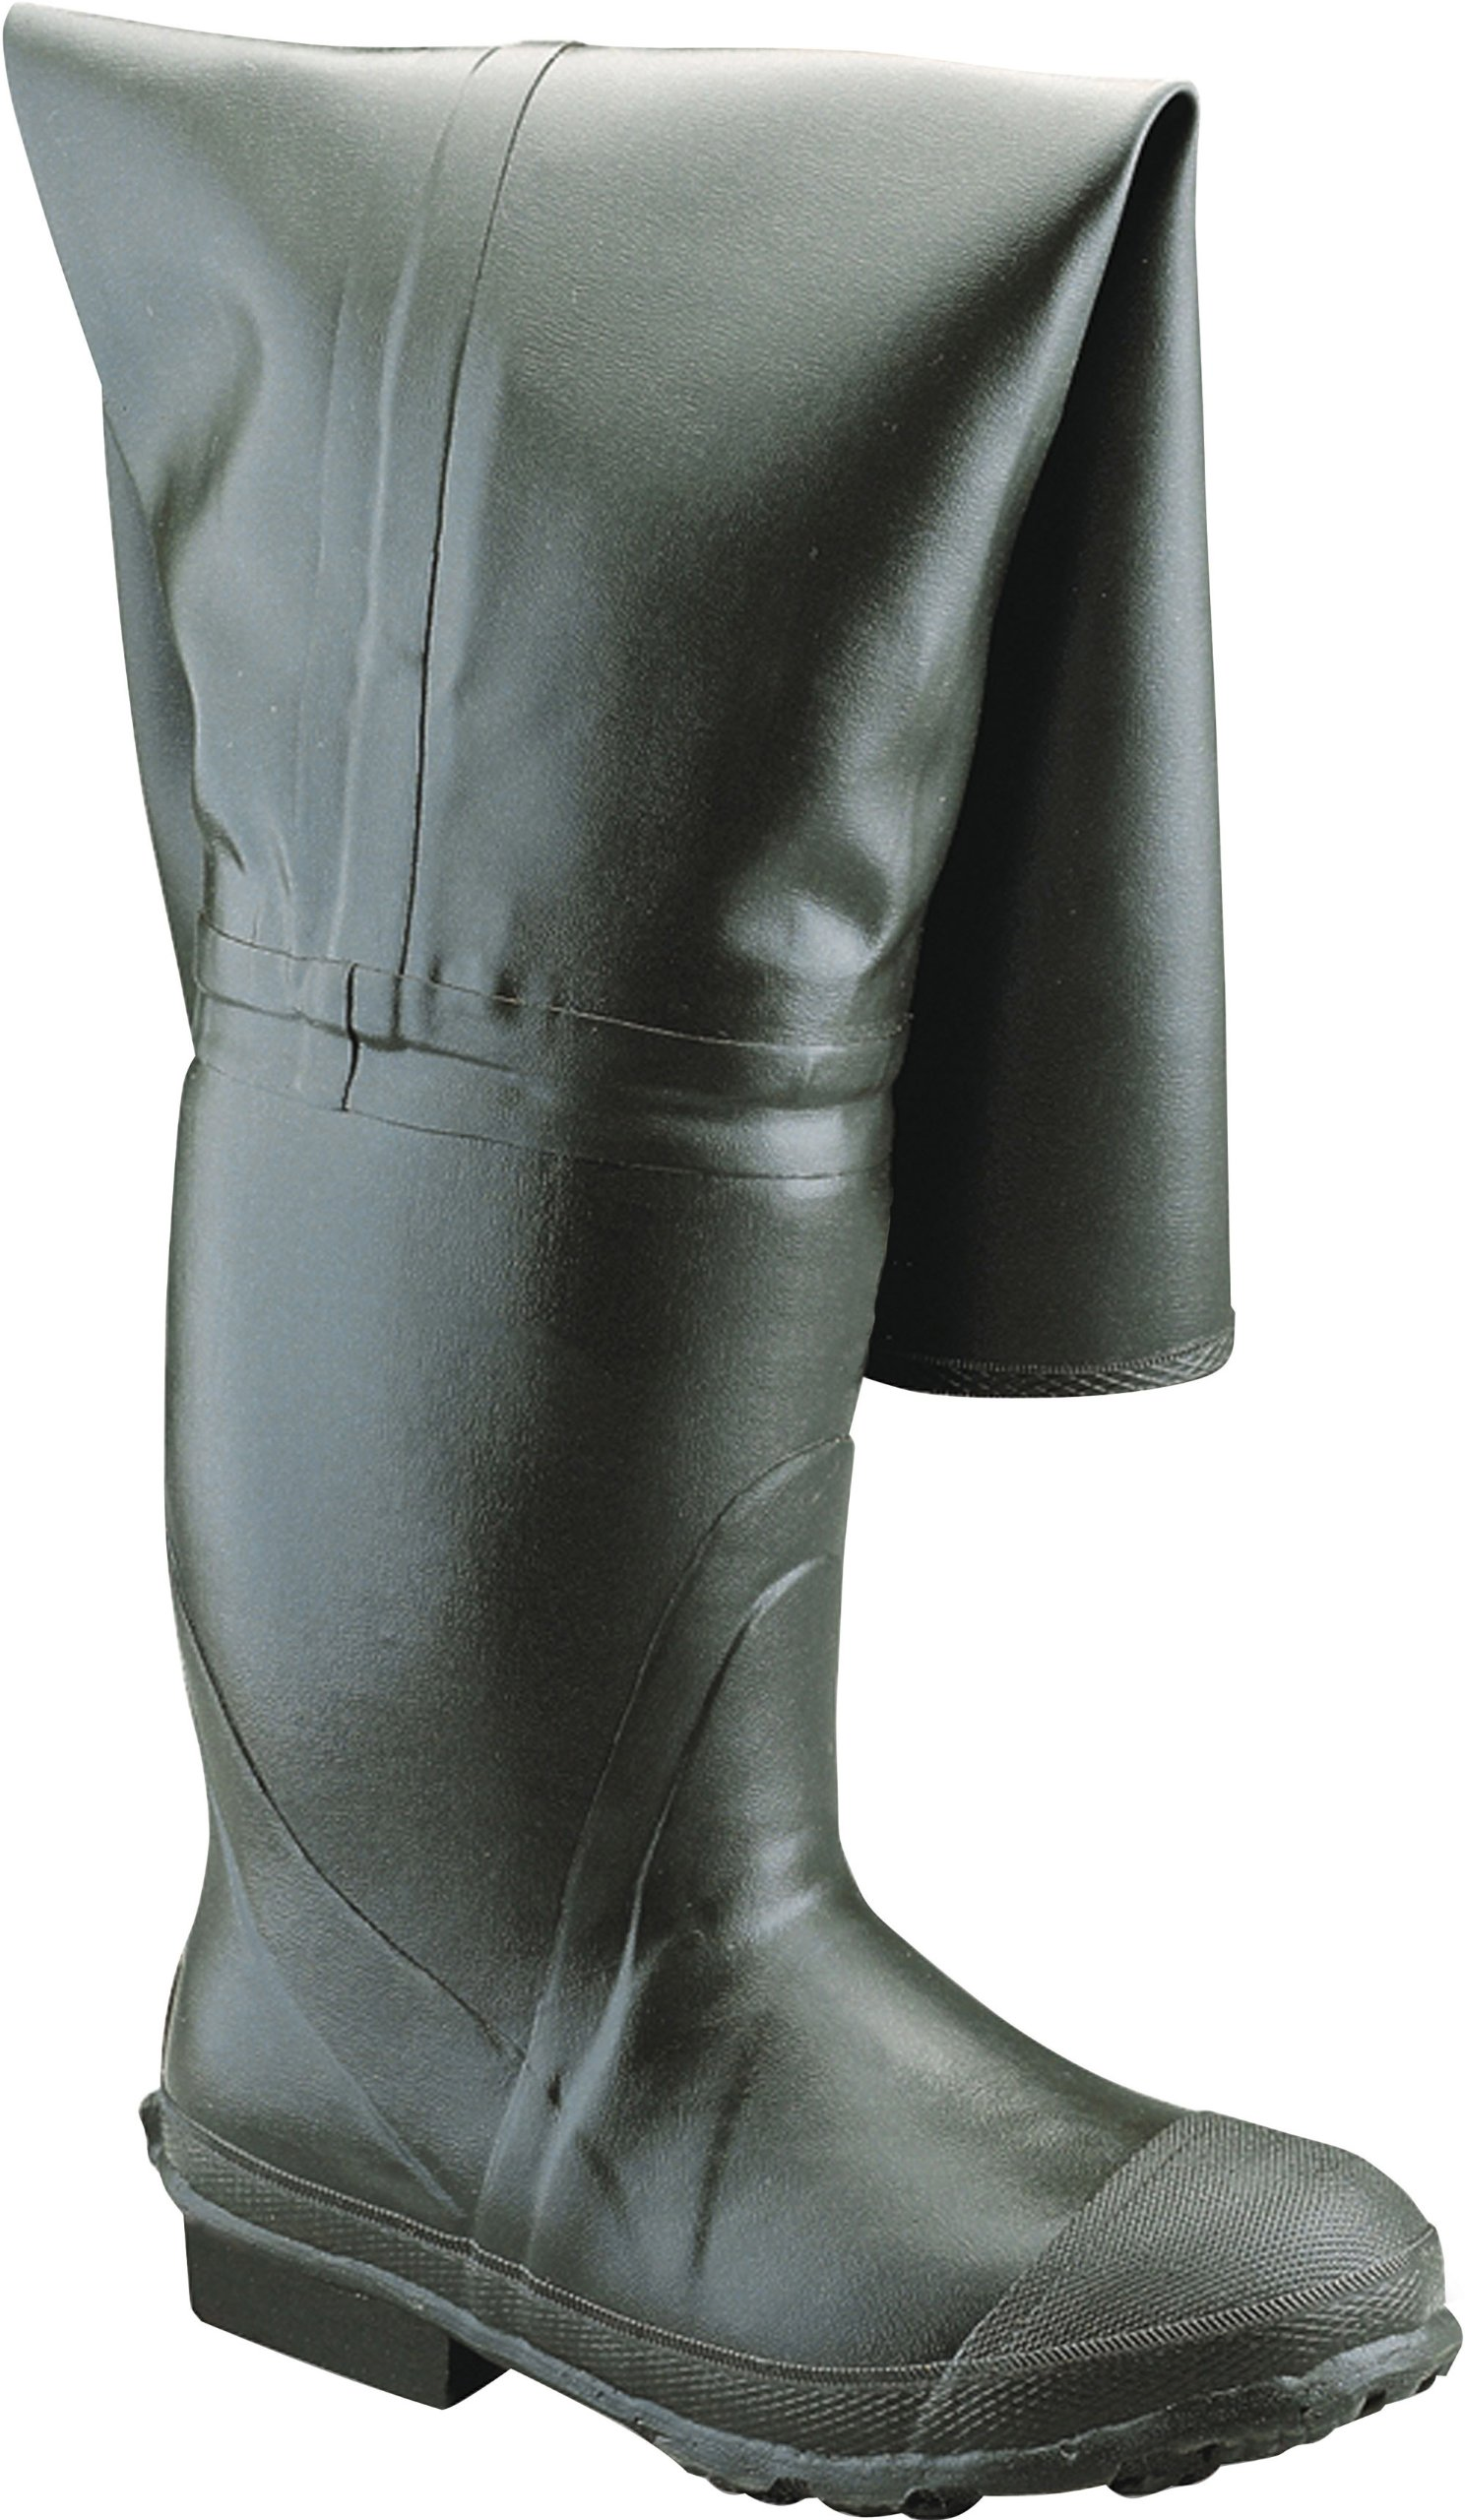 Ranger Bullhead 32'' Heavy-Duty Men's Full Rubber Insulated Hip Boots, Forest Green (A2300) by Honeywell